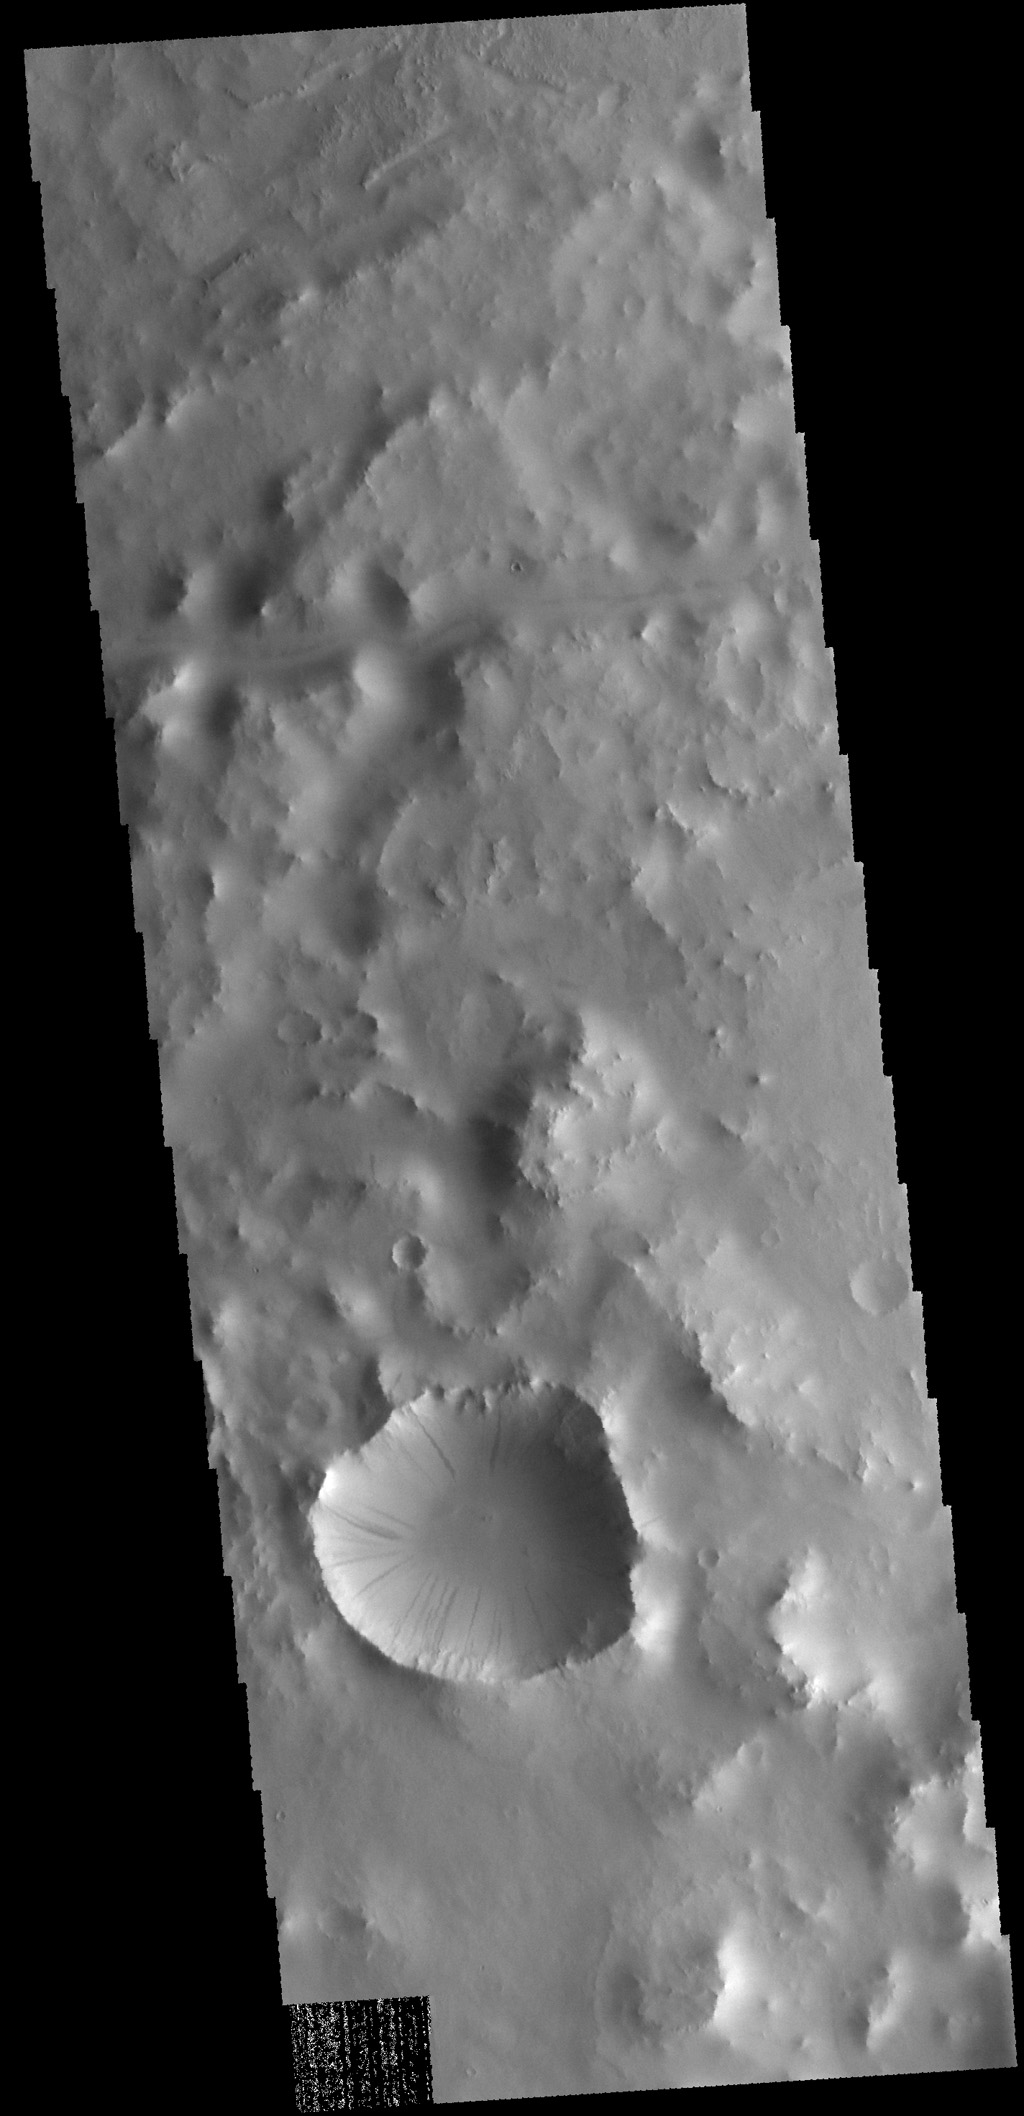 This image from NASA's 2001 Mars Odyssey spacecraft shows dark slope streaks in an unnamed crater in Terra Sabaea. These features are believed to be formed by material moving downslope, removing the dust cover and revealing darker material.